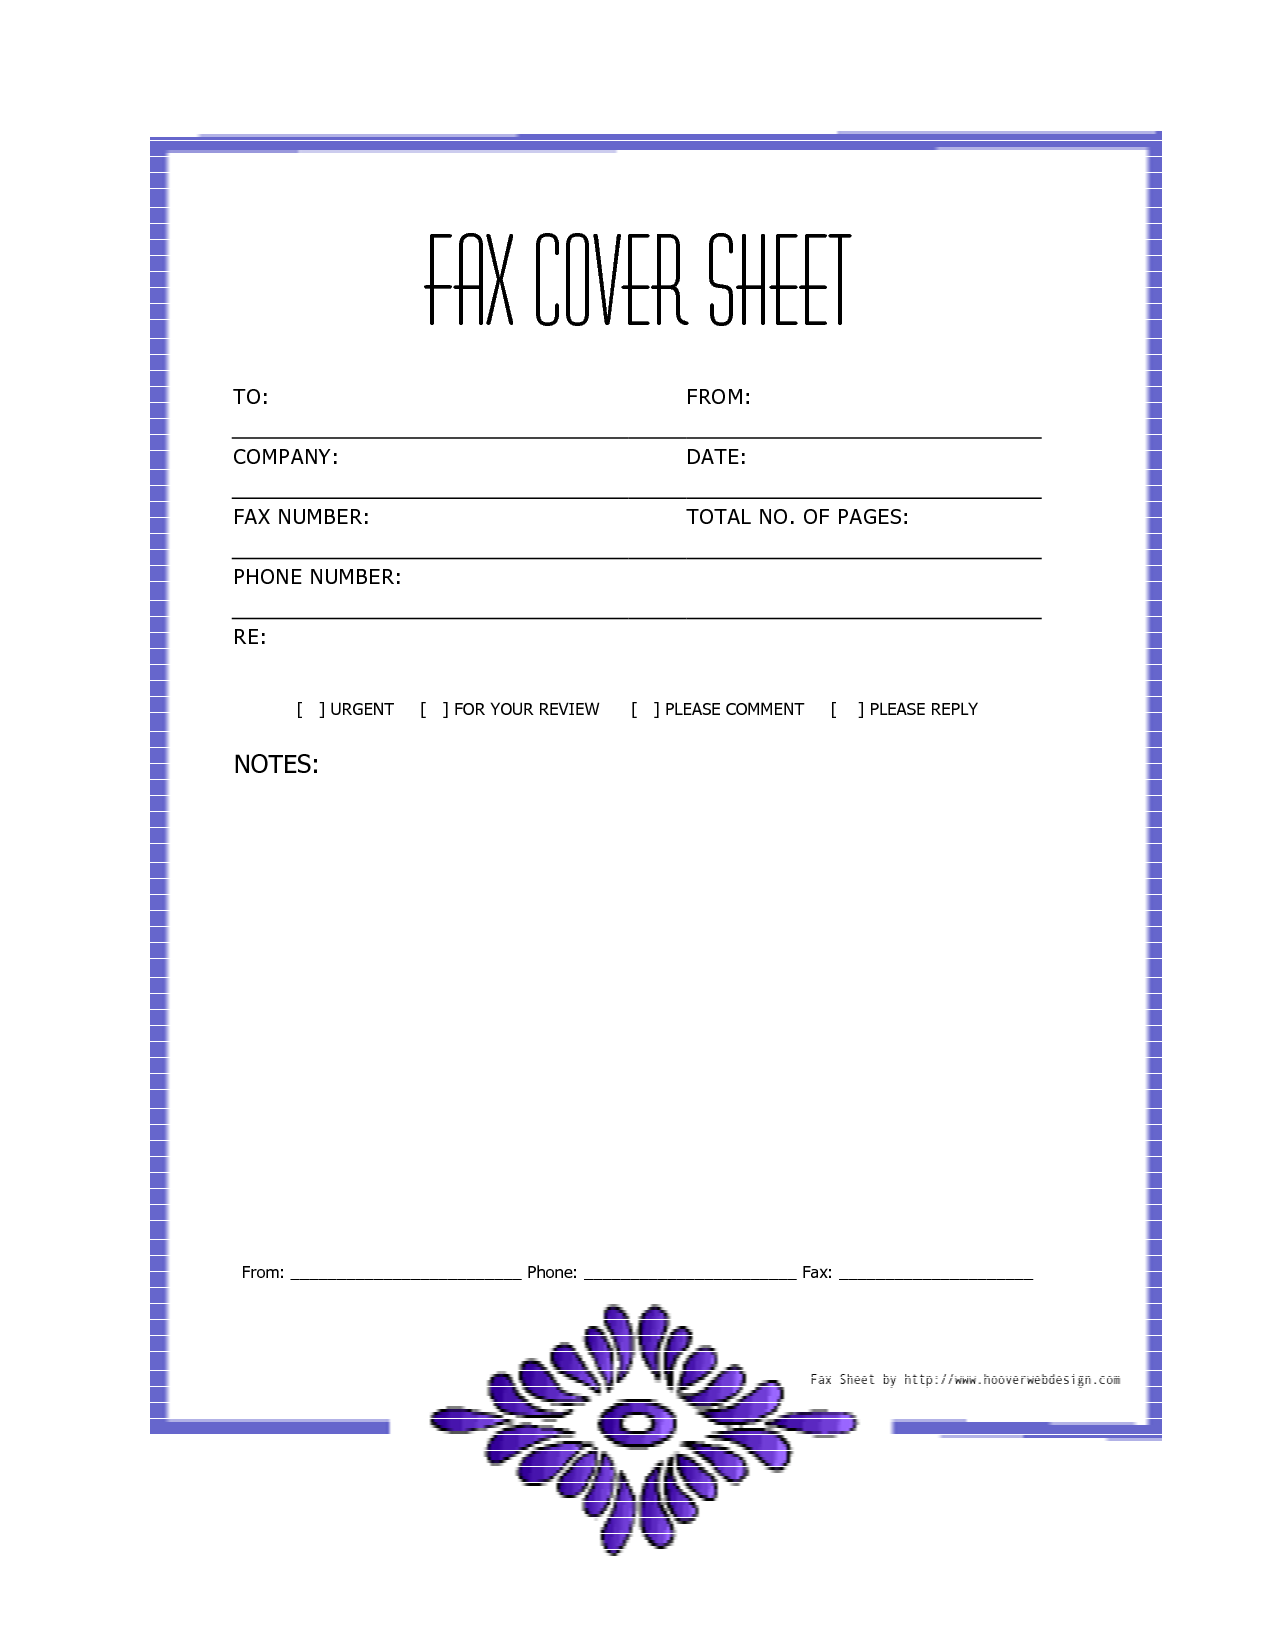 Free Downloads Fax Covers Sheets – Fax Cover Sheets Templates